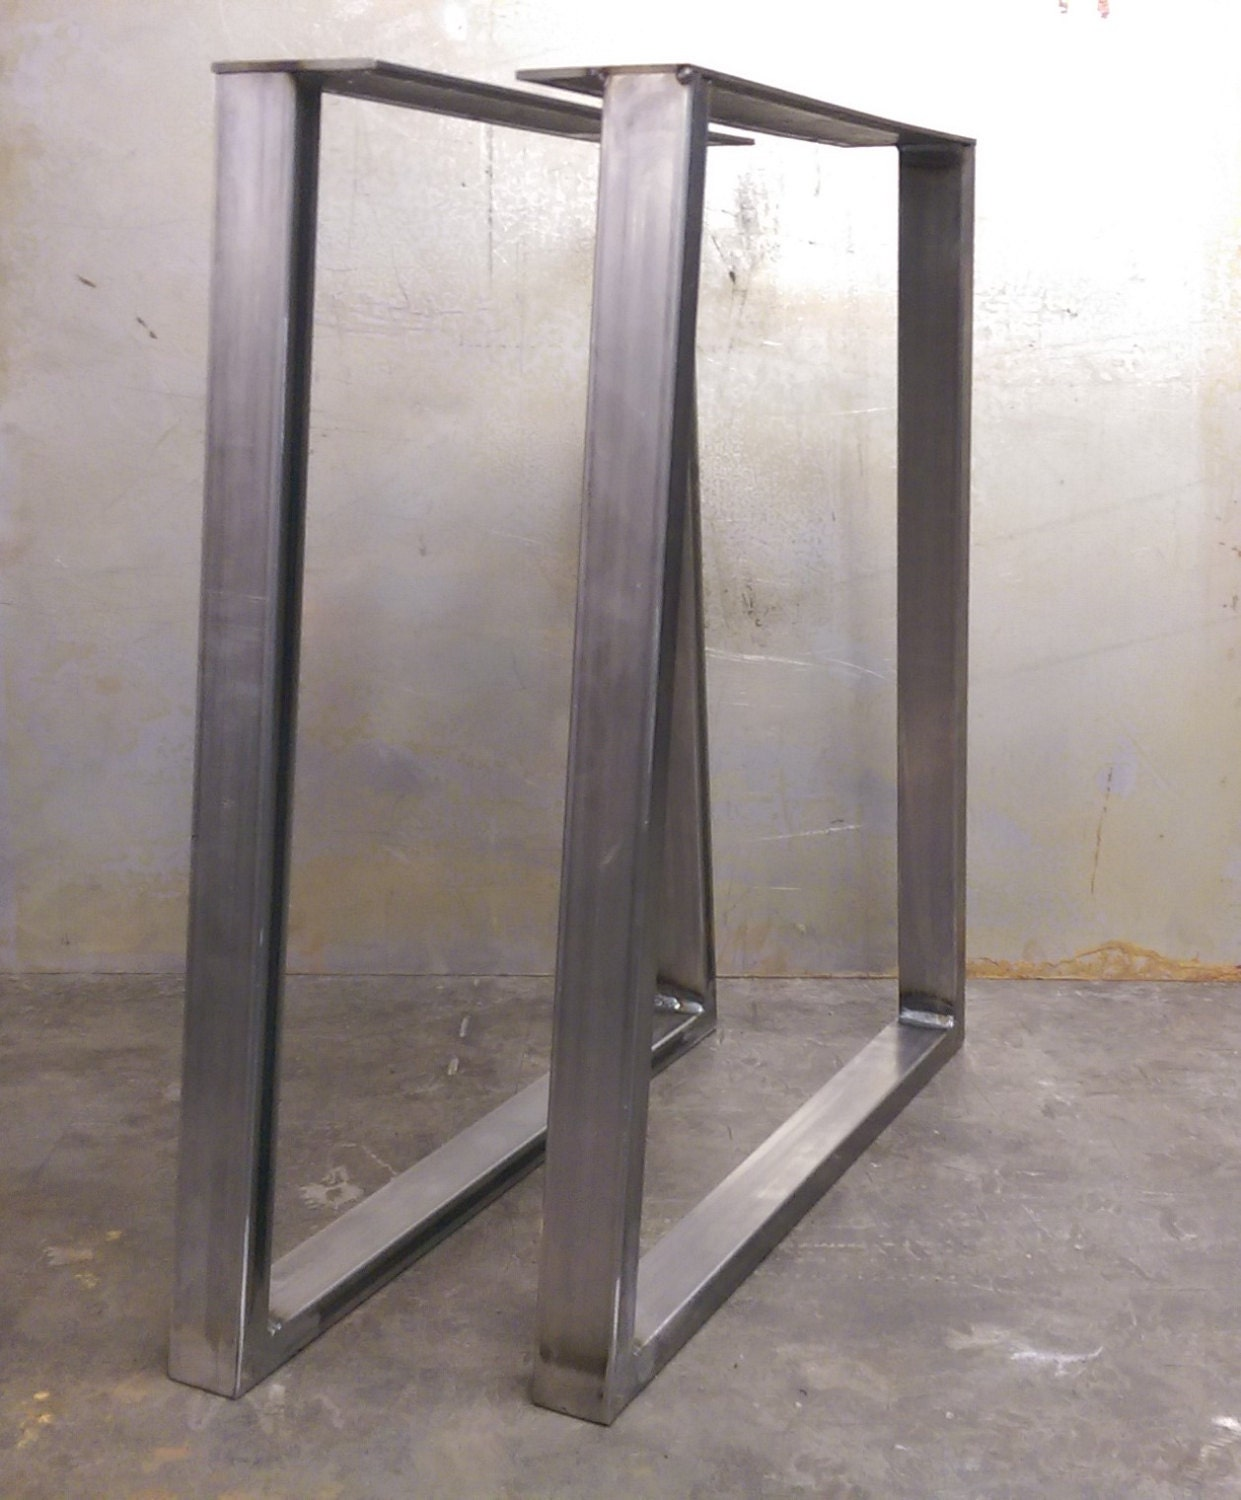 trapezoid steel table legs 2x1